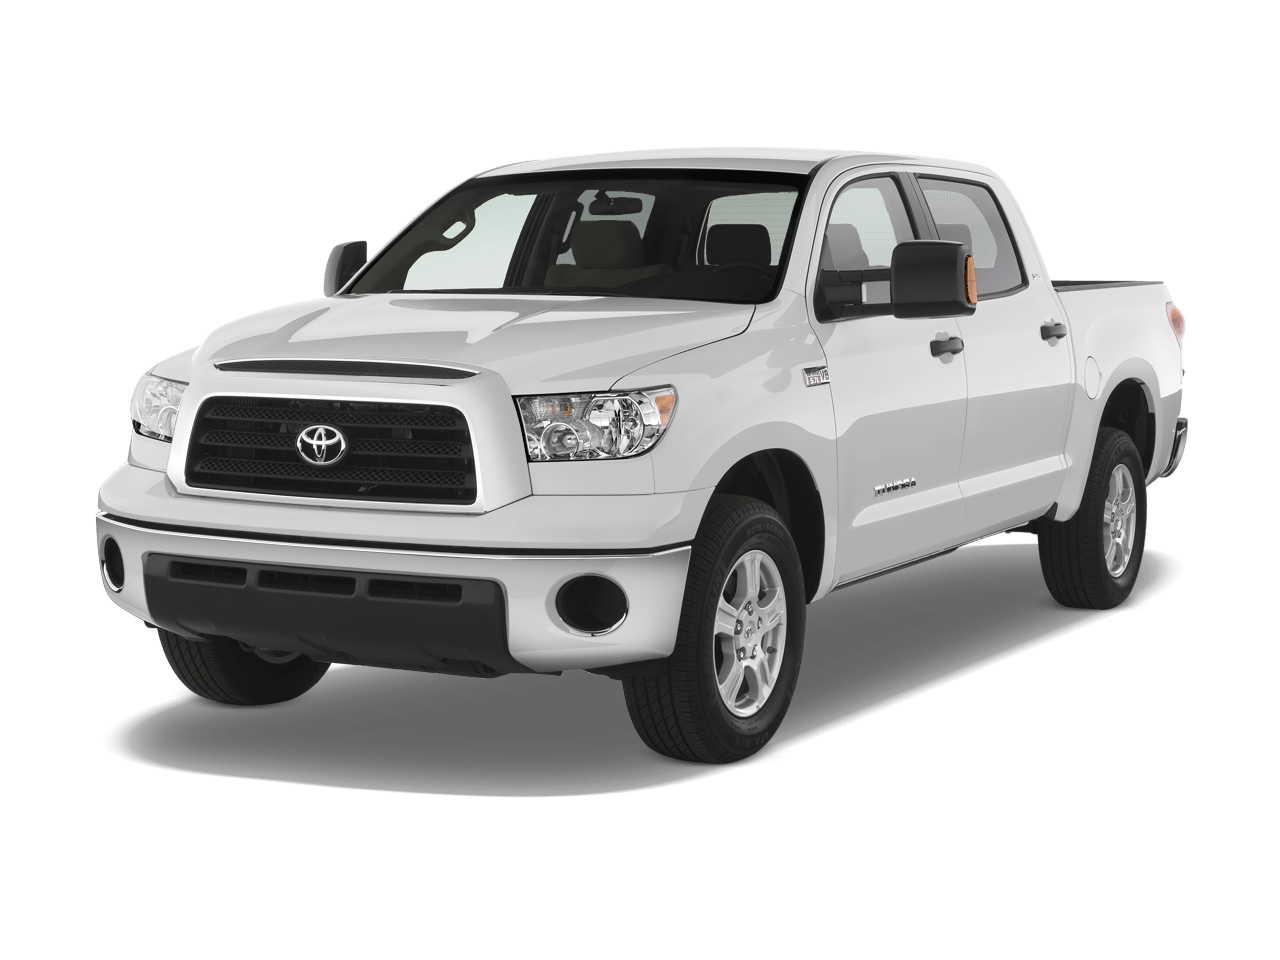 small resolution of 2007 toyota tundra reviews research tundra prices specs motortrend 2007 toyota tundra receiver wiring